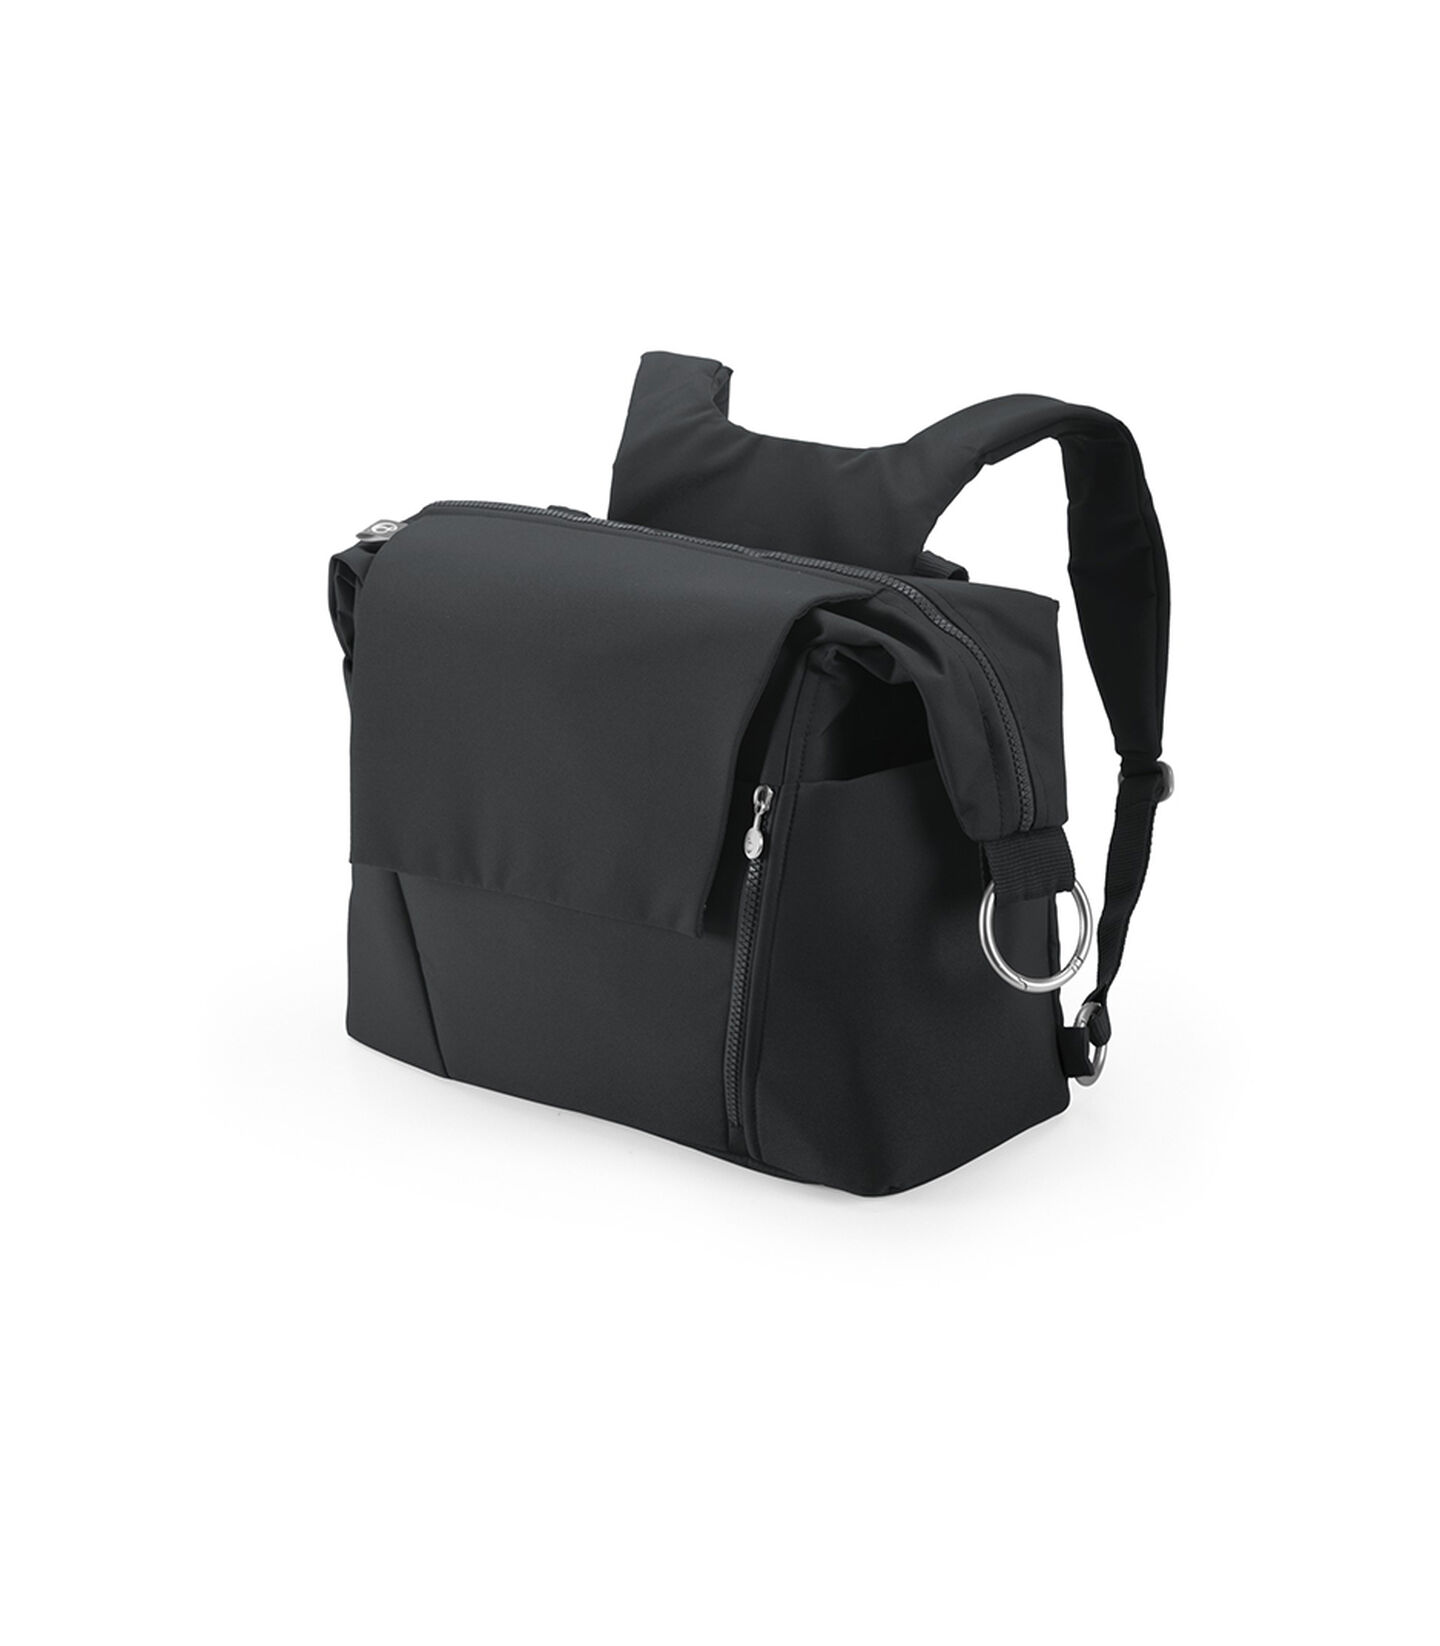 Stokke® Changing Bag Black, Black, mainview view 2